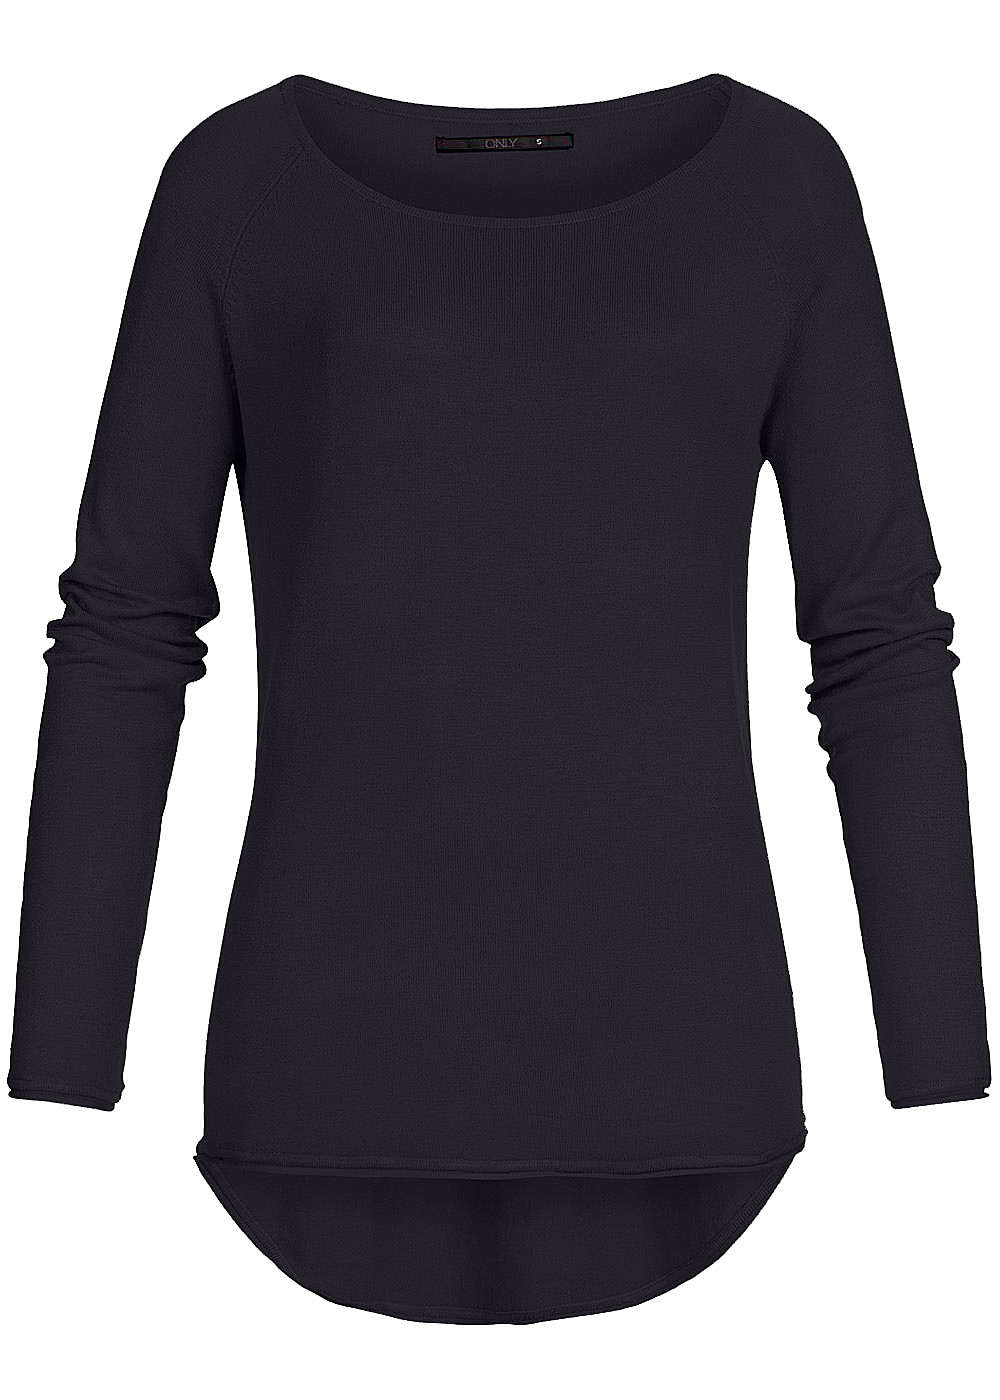 ONLY Damen NOOS Long Pullover mit Rollkante am Saum schwarz - Art.-Nr.: 20094465-XL-BK